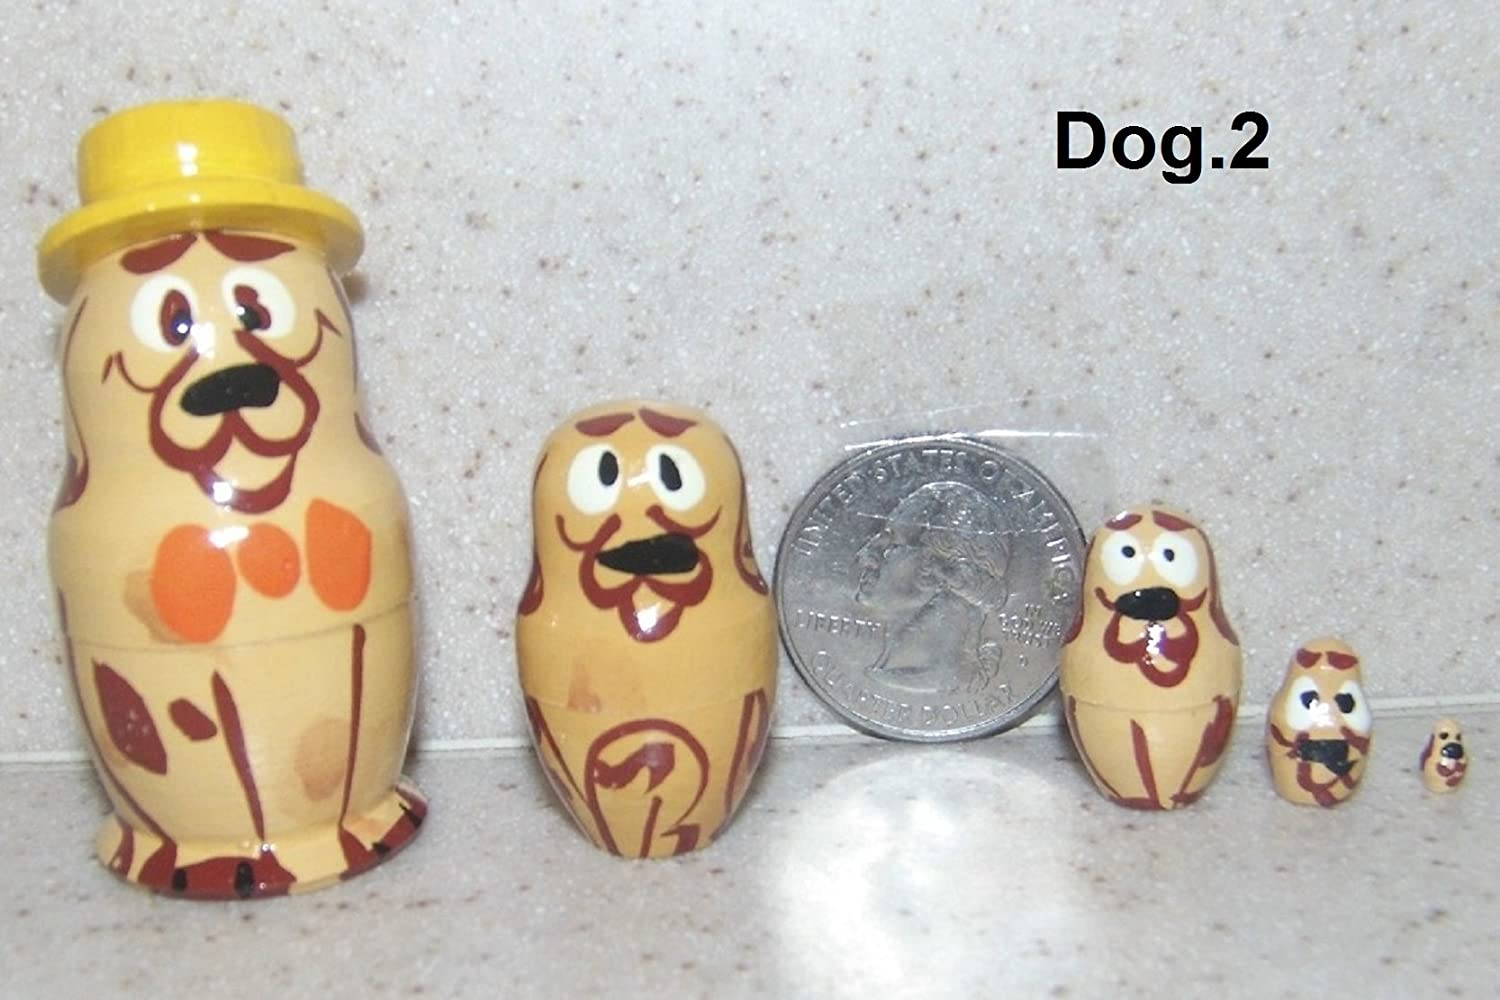 Russian Mini Nesting Doll Dog with Hat 5 pcs / 1.5 in Mini.Dog.hat2